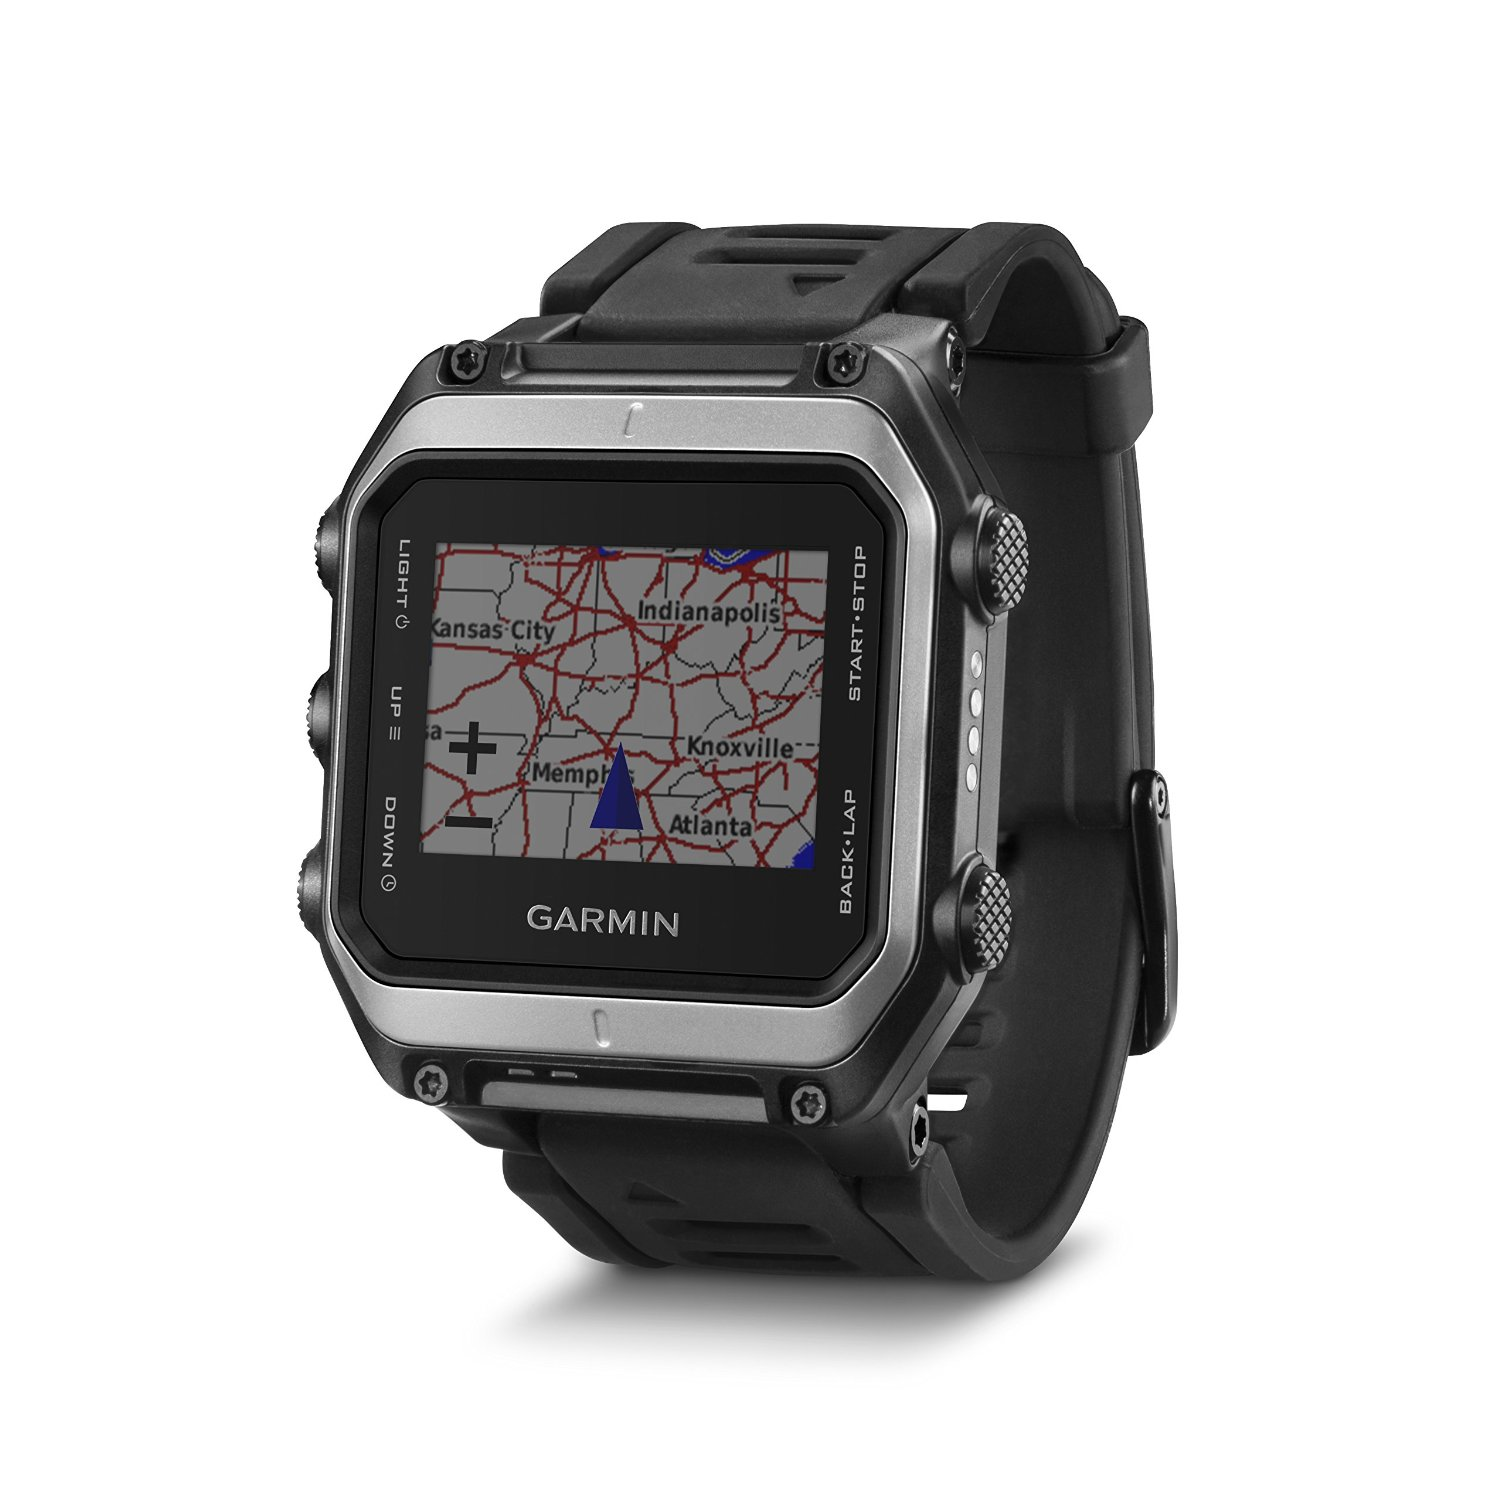 Best Garmin Gps For International Travel